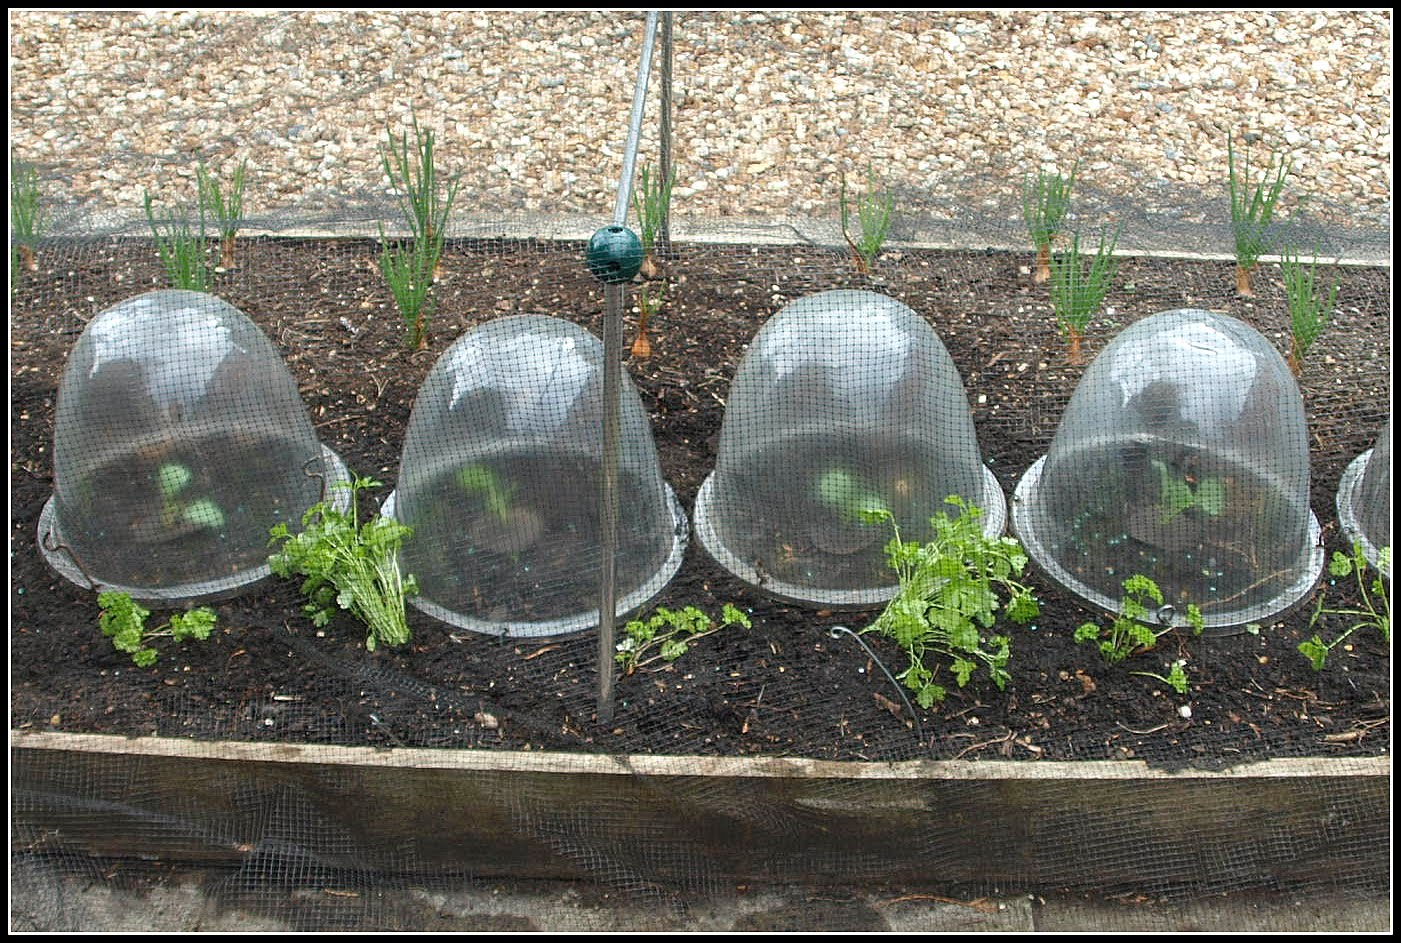 These Will Protect The Young Plants From Weather For Next Of Weeks In View Frequent Showers Rain And Hail We Have Been Having